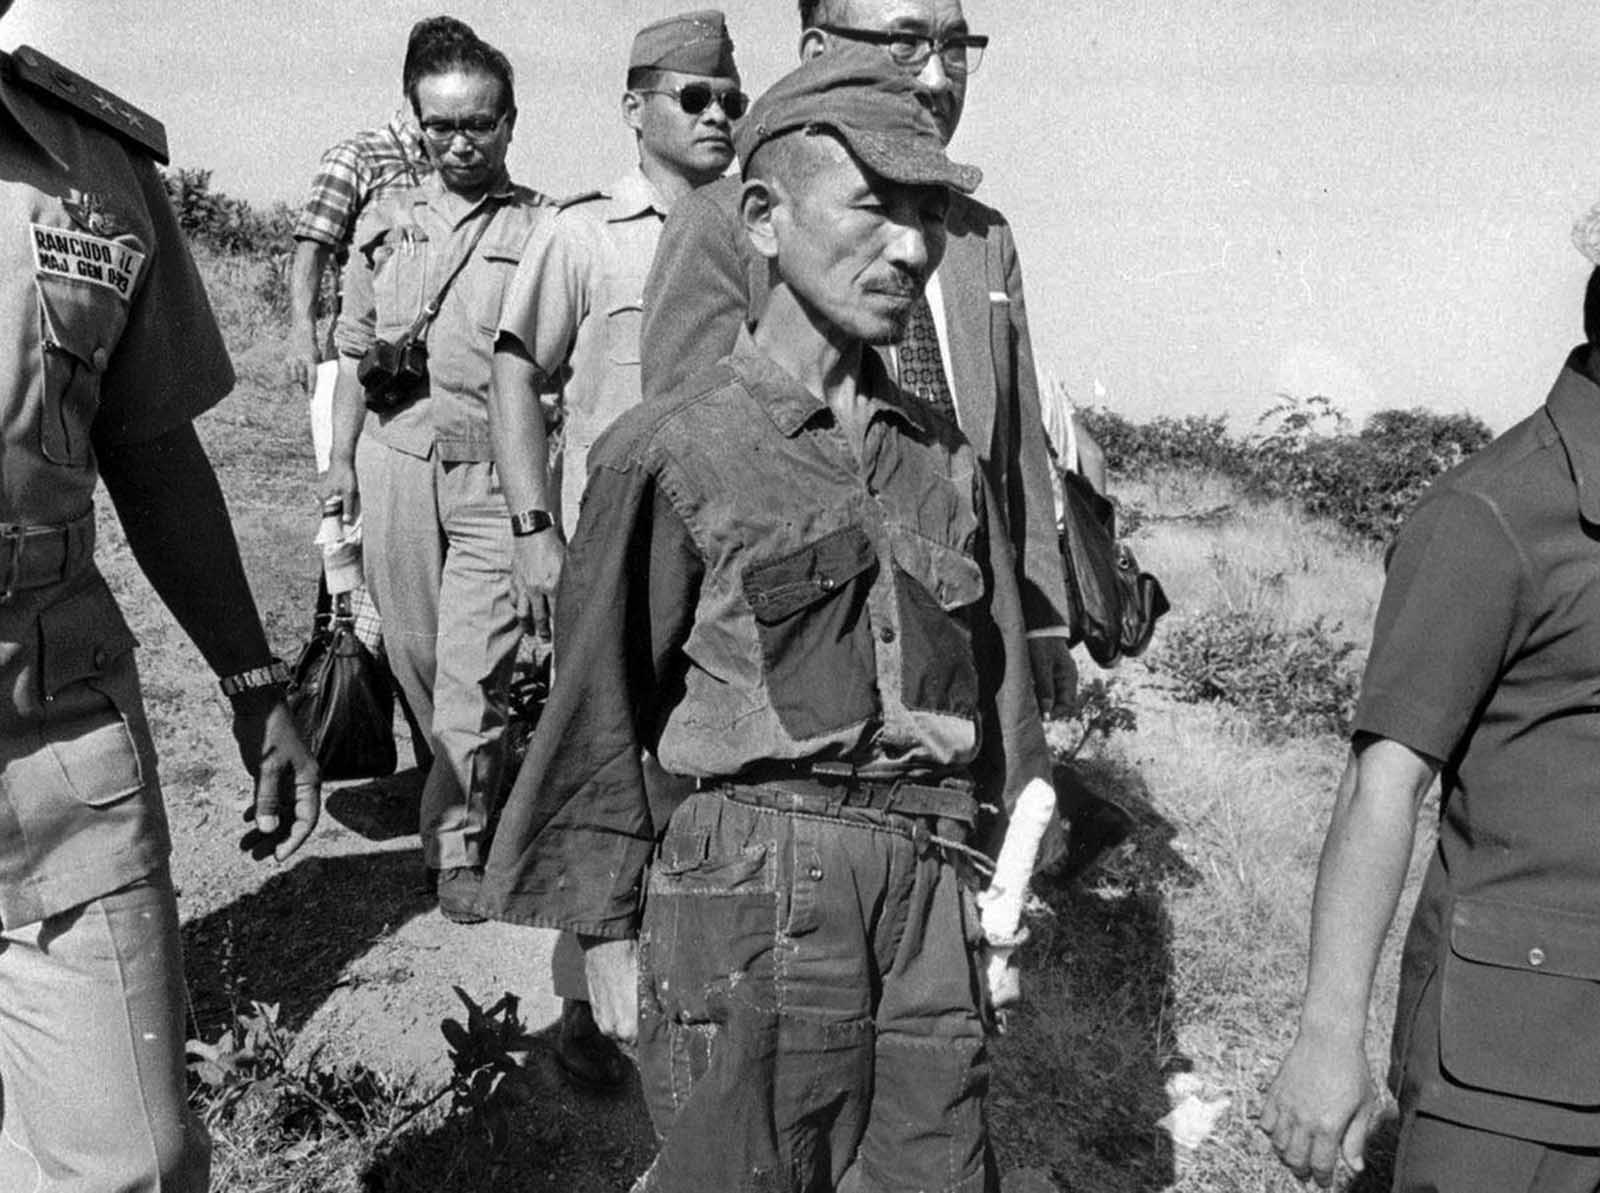 In March of 1974, some 29 years after the official end of World War II, Hiroo Onoda, a former Japanese Army intelligence officer, walks out of the jungle of Lubang Island in the Philippines, where he was finally relieved of duty. He handed over his sword (hanging from his hip in photo), his rifle, ammunition and several hand grenades. Onoda had been sent to Lubang Island in December of 1944 to join an existing group of soldiers and hamper any enemy attacks. Allied forces overtook the island just a few months later, capturing or killing all but Onoda and three other Japanese soldiers. The four ran into the hills and began a decades-long insurgency extending well past the end of the war. Several times they found or were handed leaflets notifying them that the war had ended, but they refused to believe it. In 1950, one of the soldiers turned himself in to Philippine authorities. By 1972, Onoda's two other compatriots were dead, killed during guerrilla activities, leaving Onoda alone. In 1974, Onoda met a Japanese college dropout, Norio Suzuki, who was traveling the world, and through their friendship, Onoda's former commanding officer was located and flew to Lubang Island to formally relieve Onoda of duty, and bring him home to Japan. Over the years, the small group had killed some 30 Filipinos in various attacks, but Onoda ended up going free, after he received a pardon from President Ferdinand Marcos.